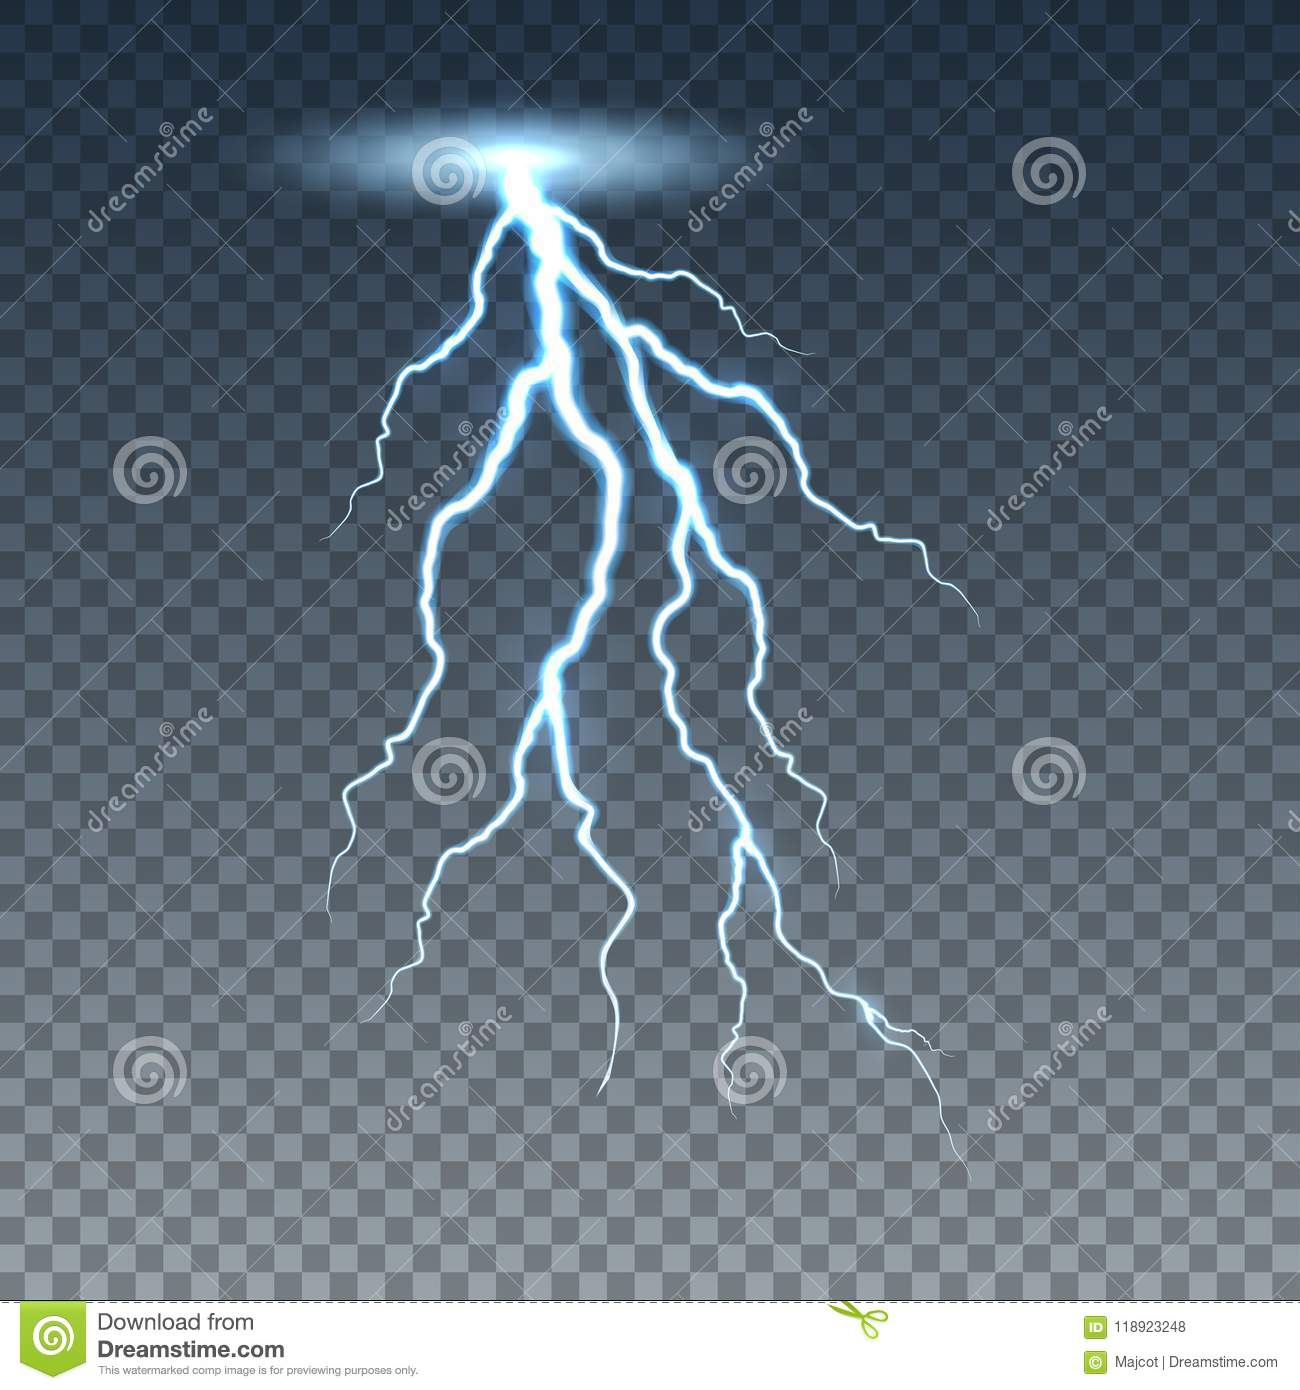 Realistic Lightning And Thunder Bolt Stock Vector